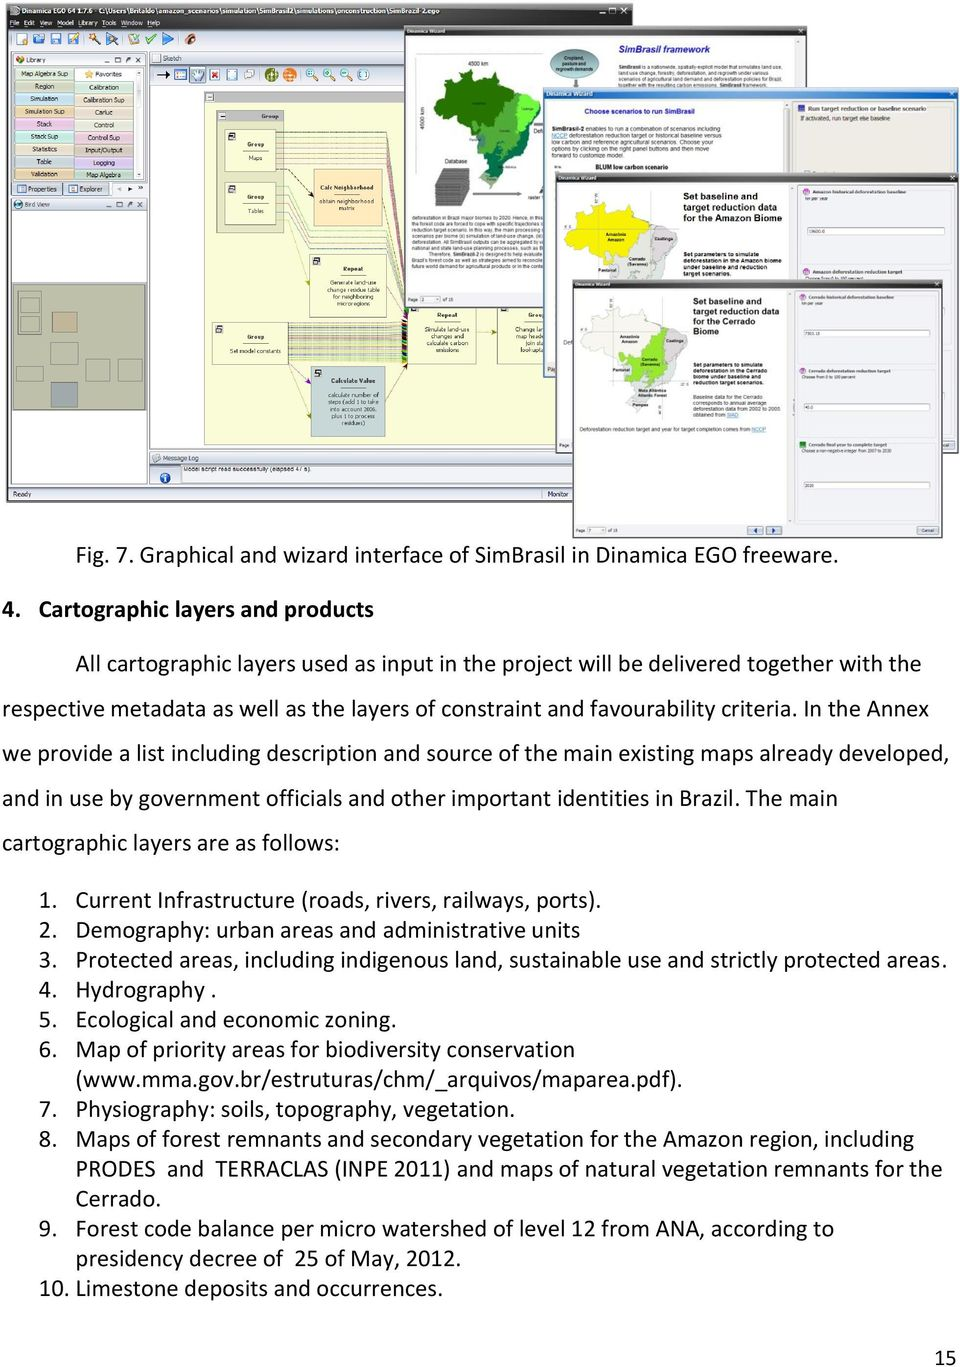 criteria. In the Annex we provide a list including description and source of the main existing maps already developed, and in use by government officials and other important identities in Brazil.